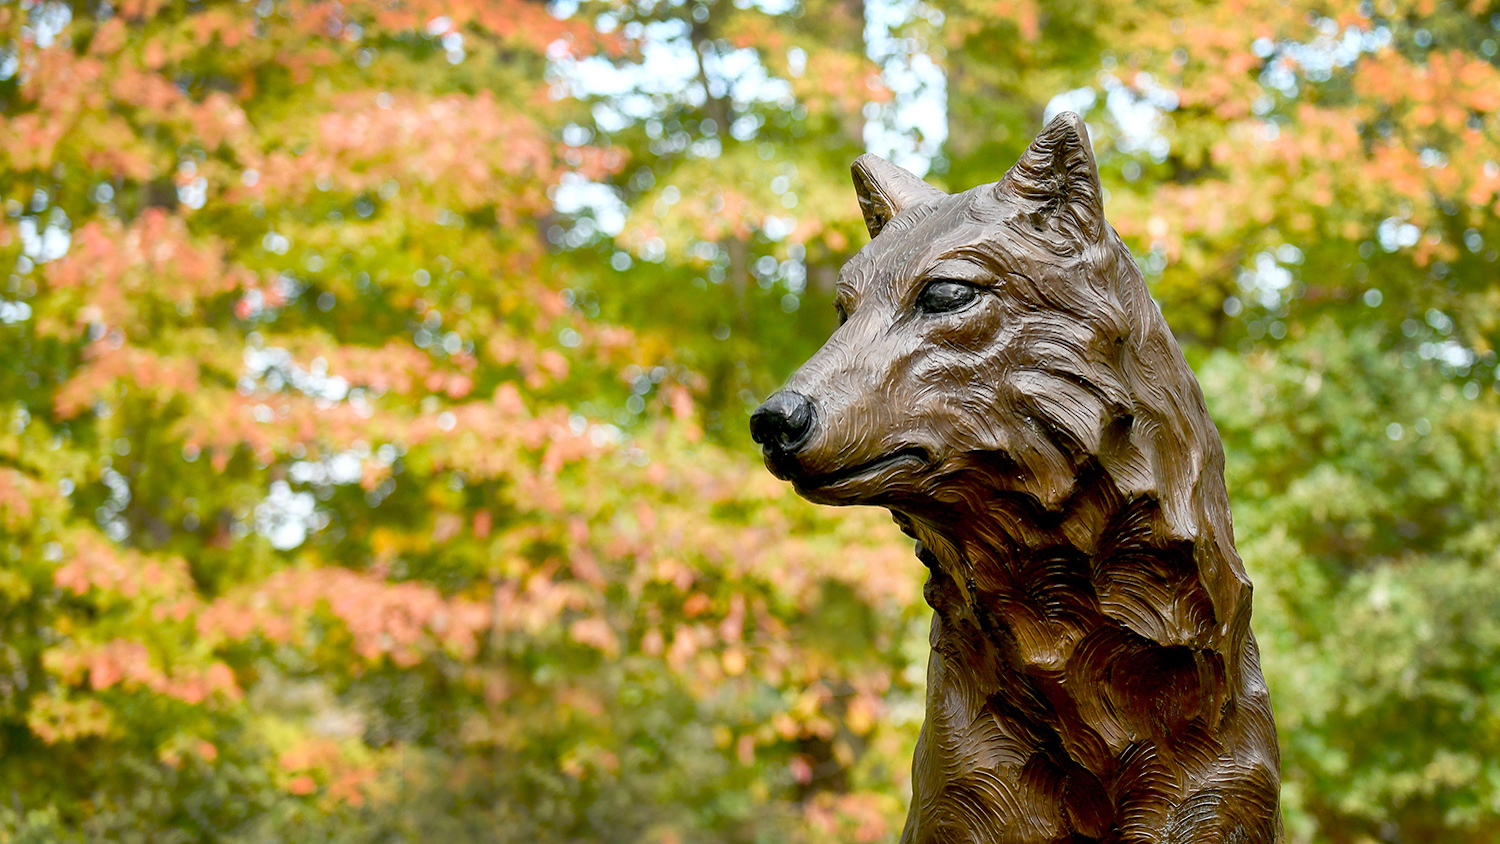 One of the wolf statues at the Park Alumni Center stands in front of fall leaves.